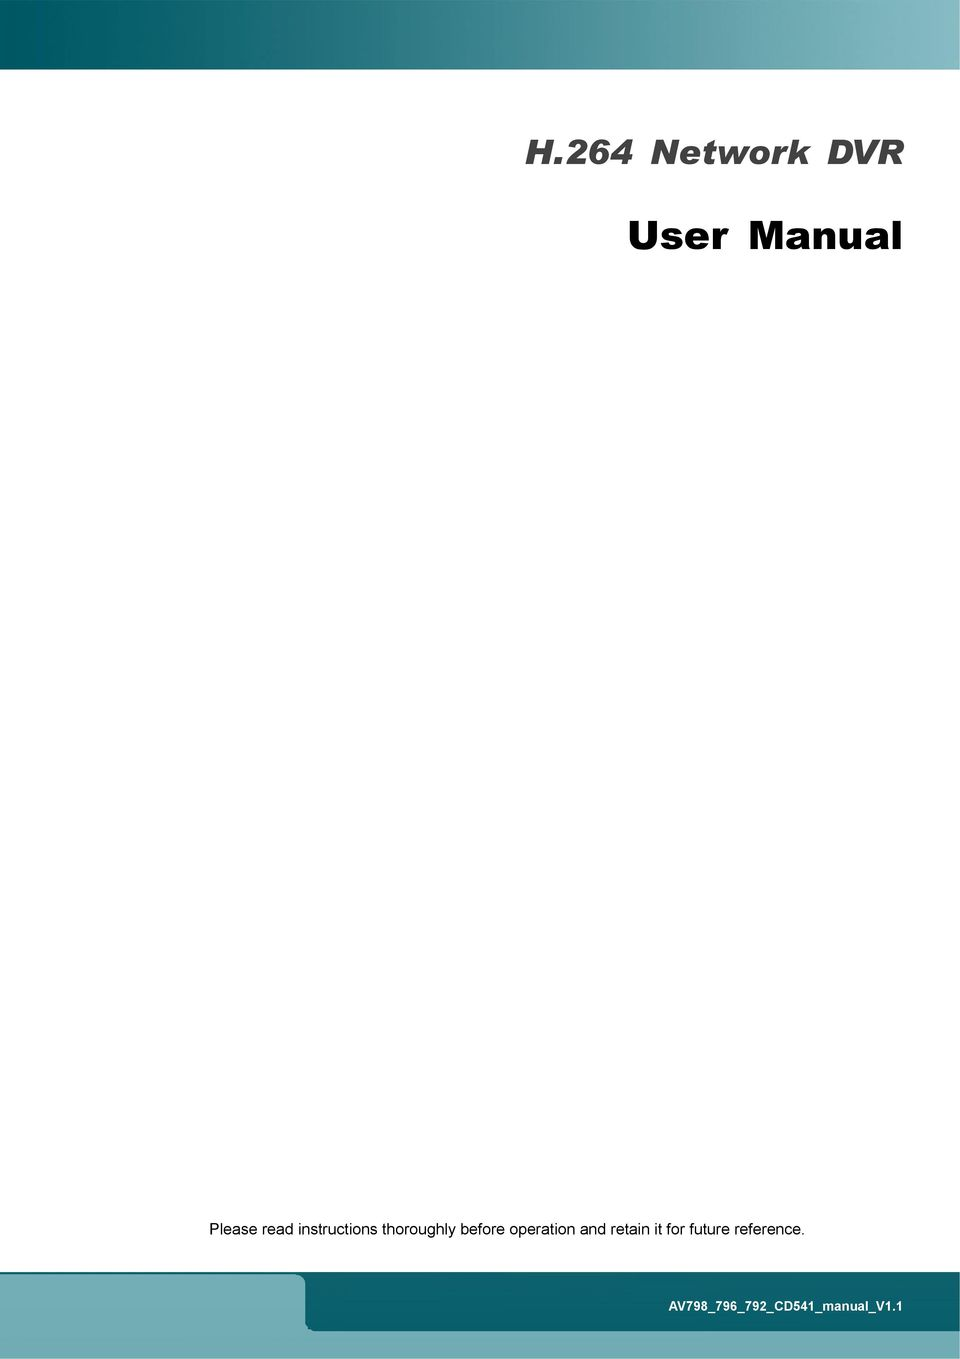 ... Array - user manual h 264 network dvr please read instructions  thoroughly rh docplayer net